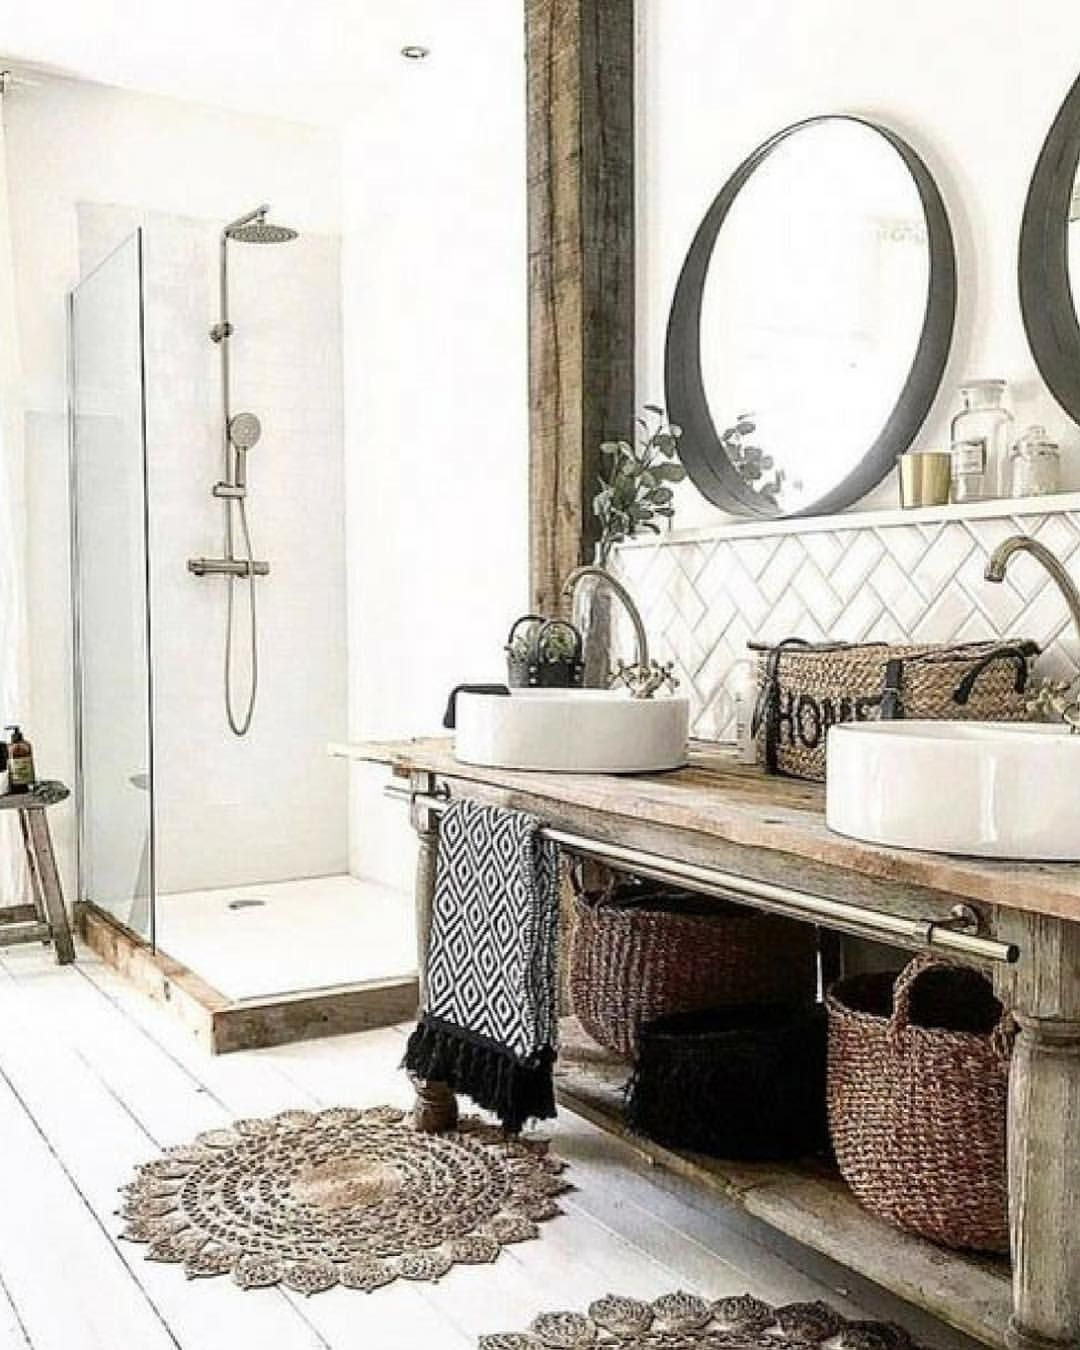 Badezimmer ideen dekor klein i like idea of style of mirrors and sitting loosly not hanging or